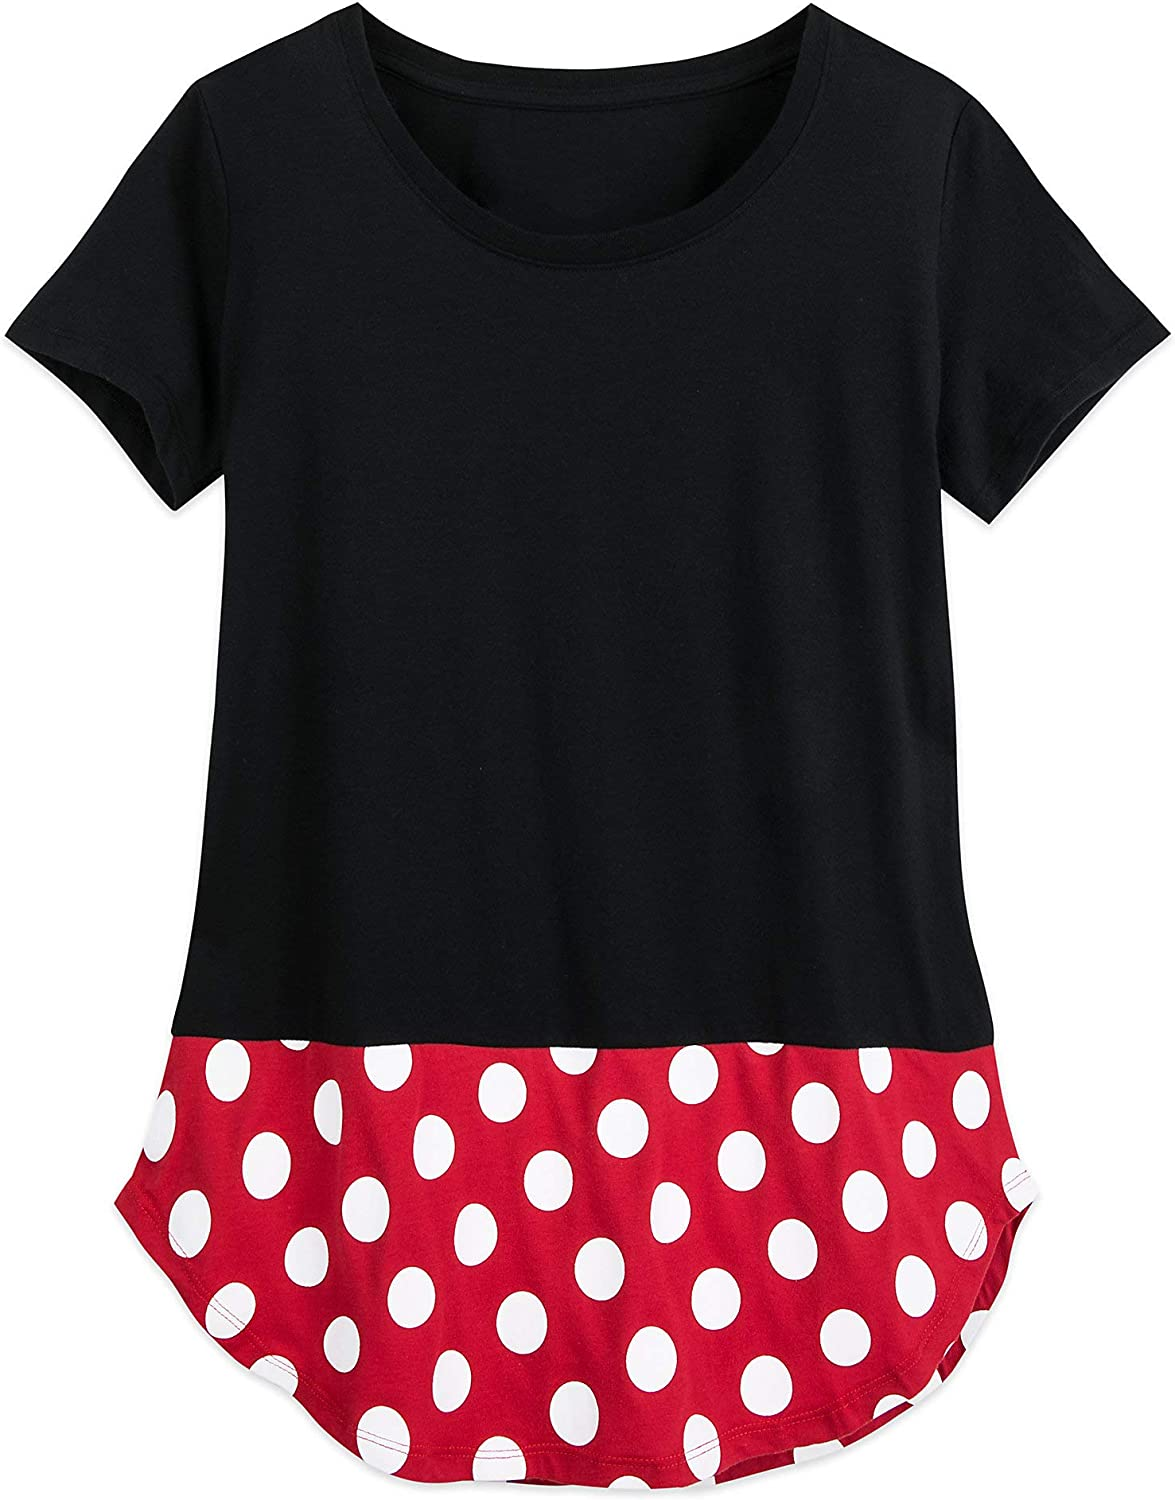 Disney Minnie Mouse Costume T-Shirt for Women Multi